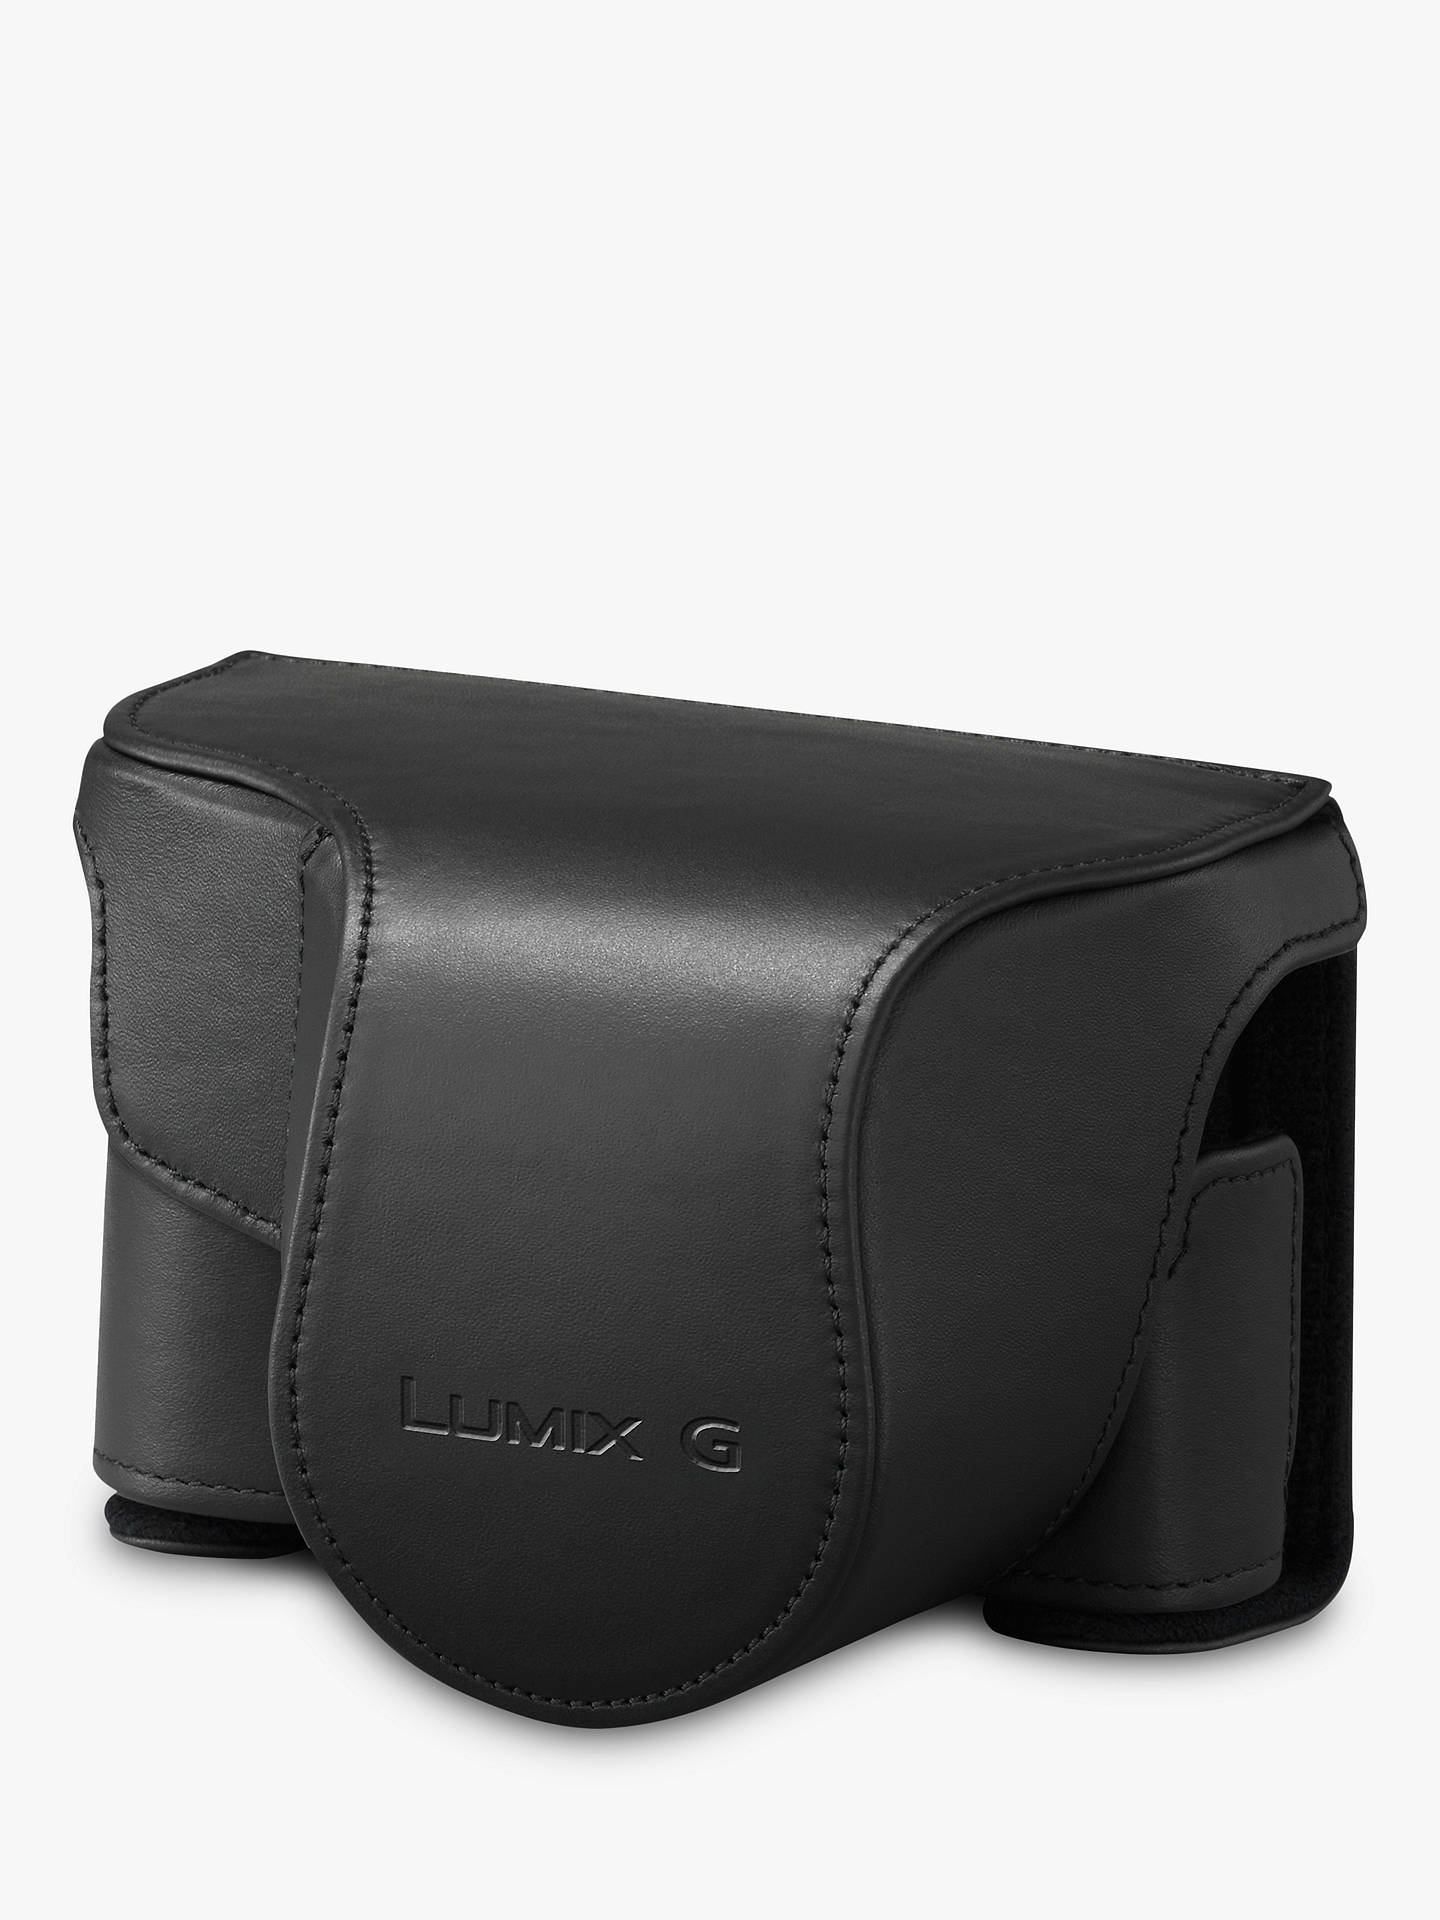 BuyPanasonic GX80 Leather Camera Case, Black Online at johnlewis.com